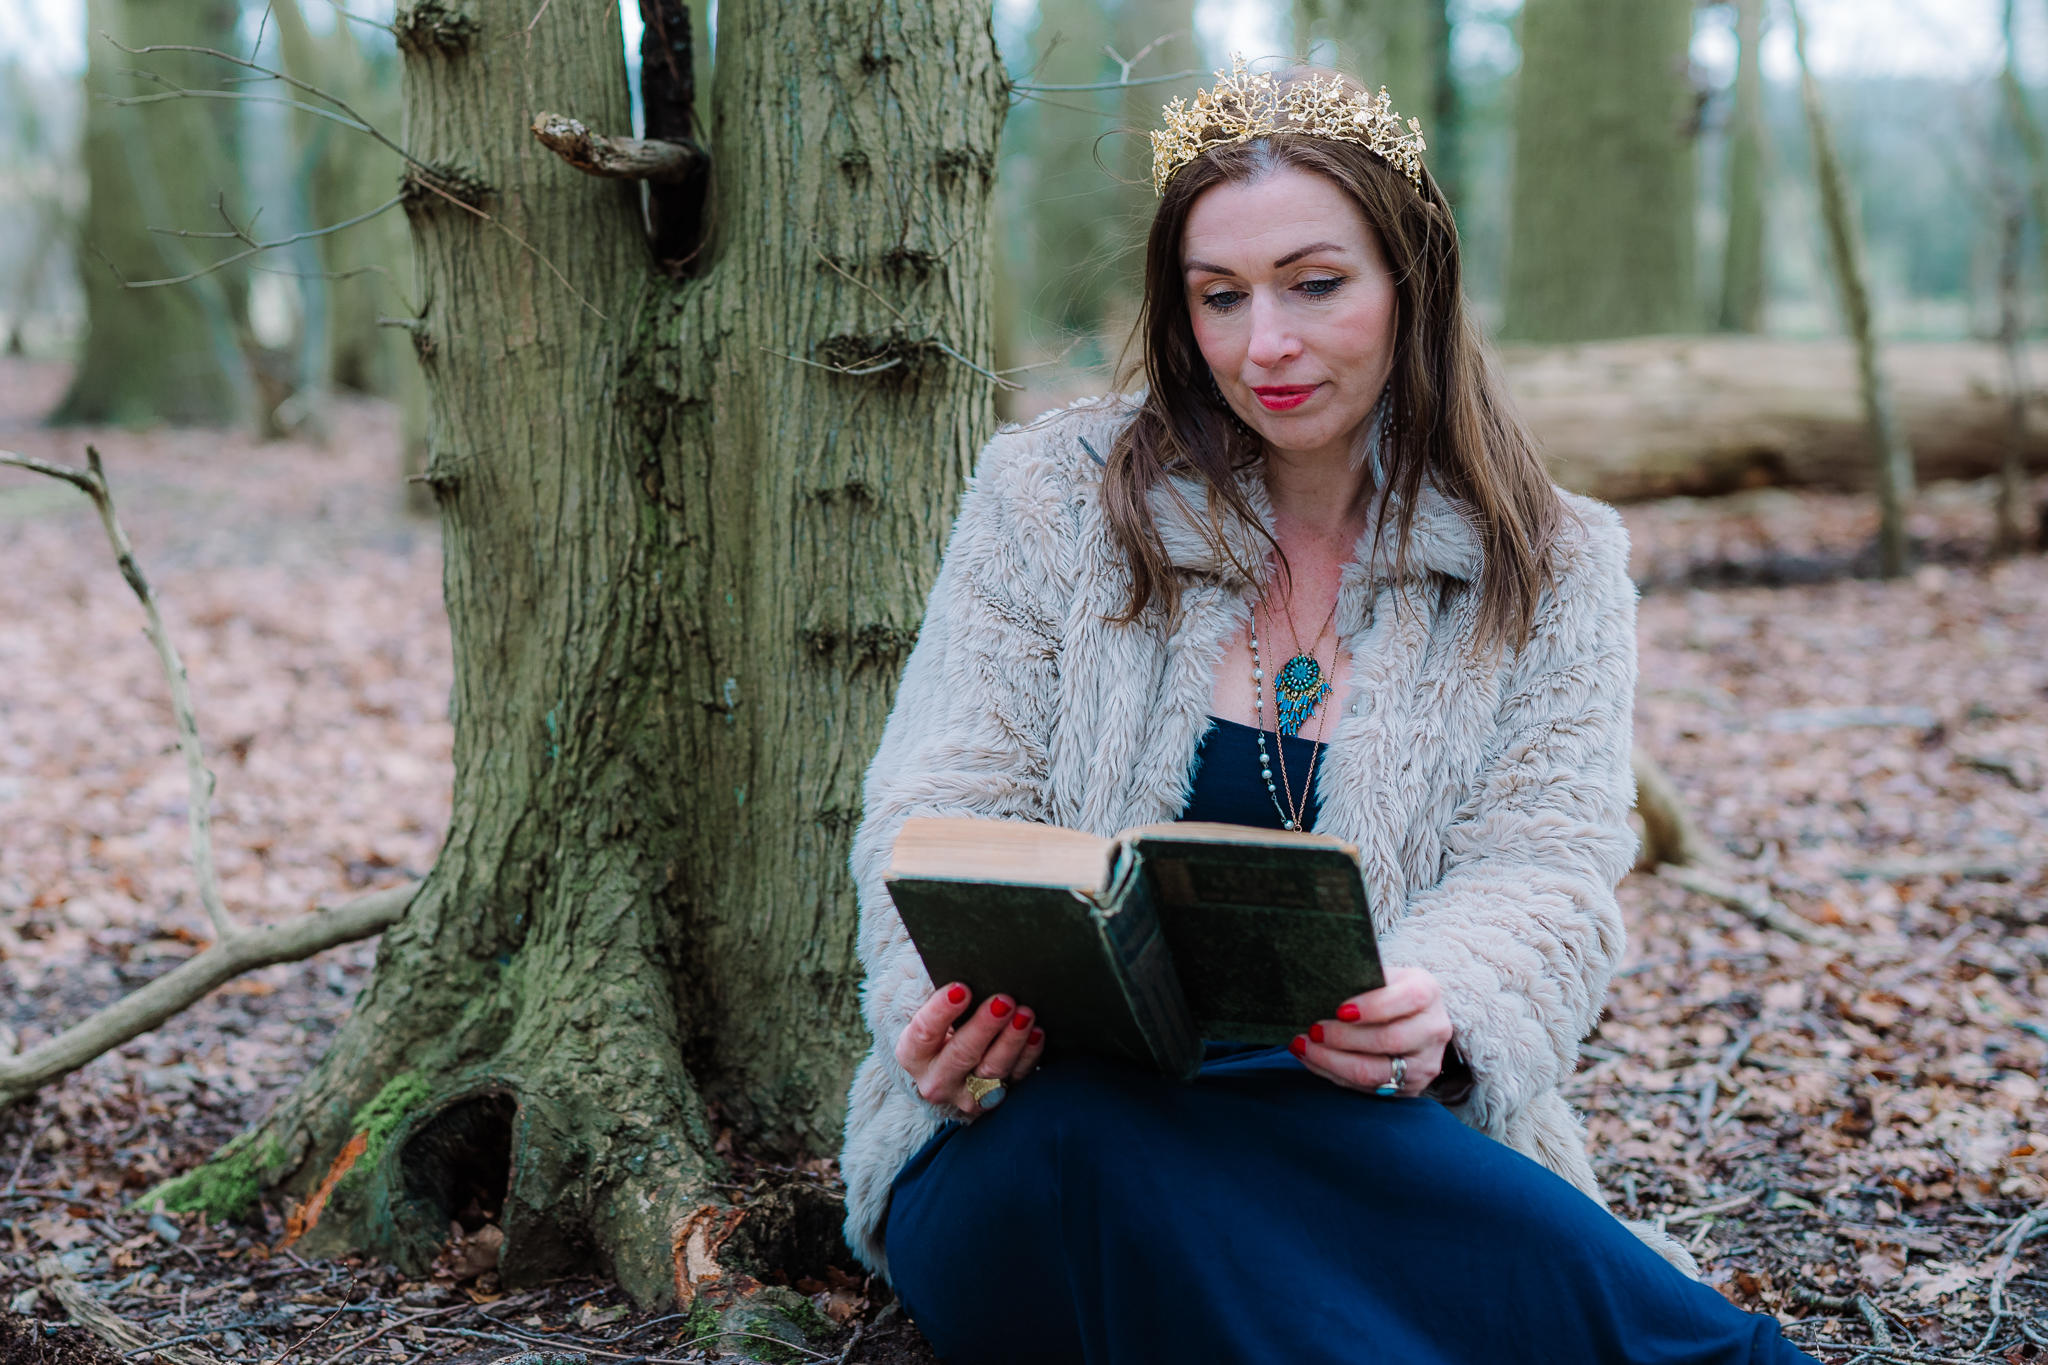 Fairytale personal brand photography, wild queen in the woods with a book - Lian of Waking the Wild